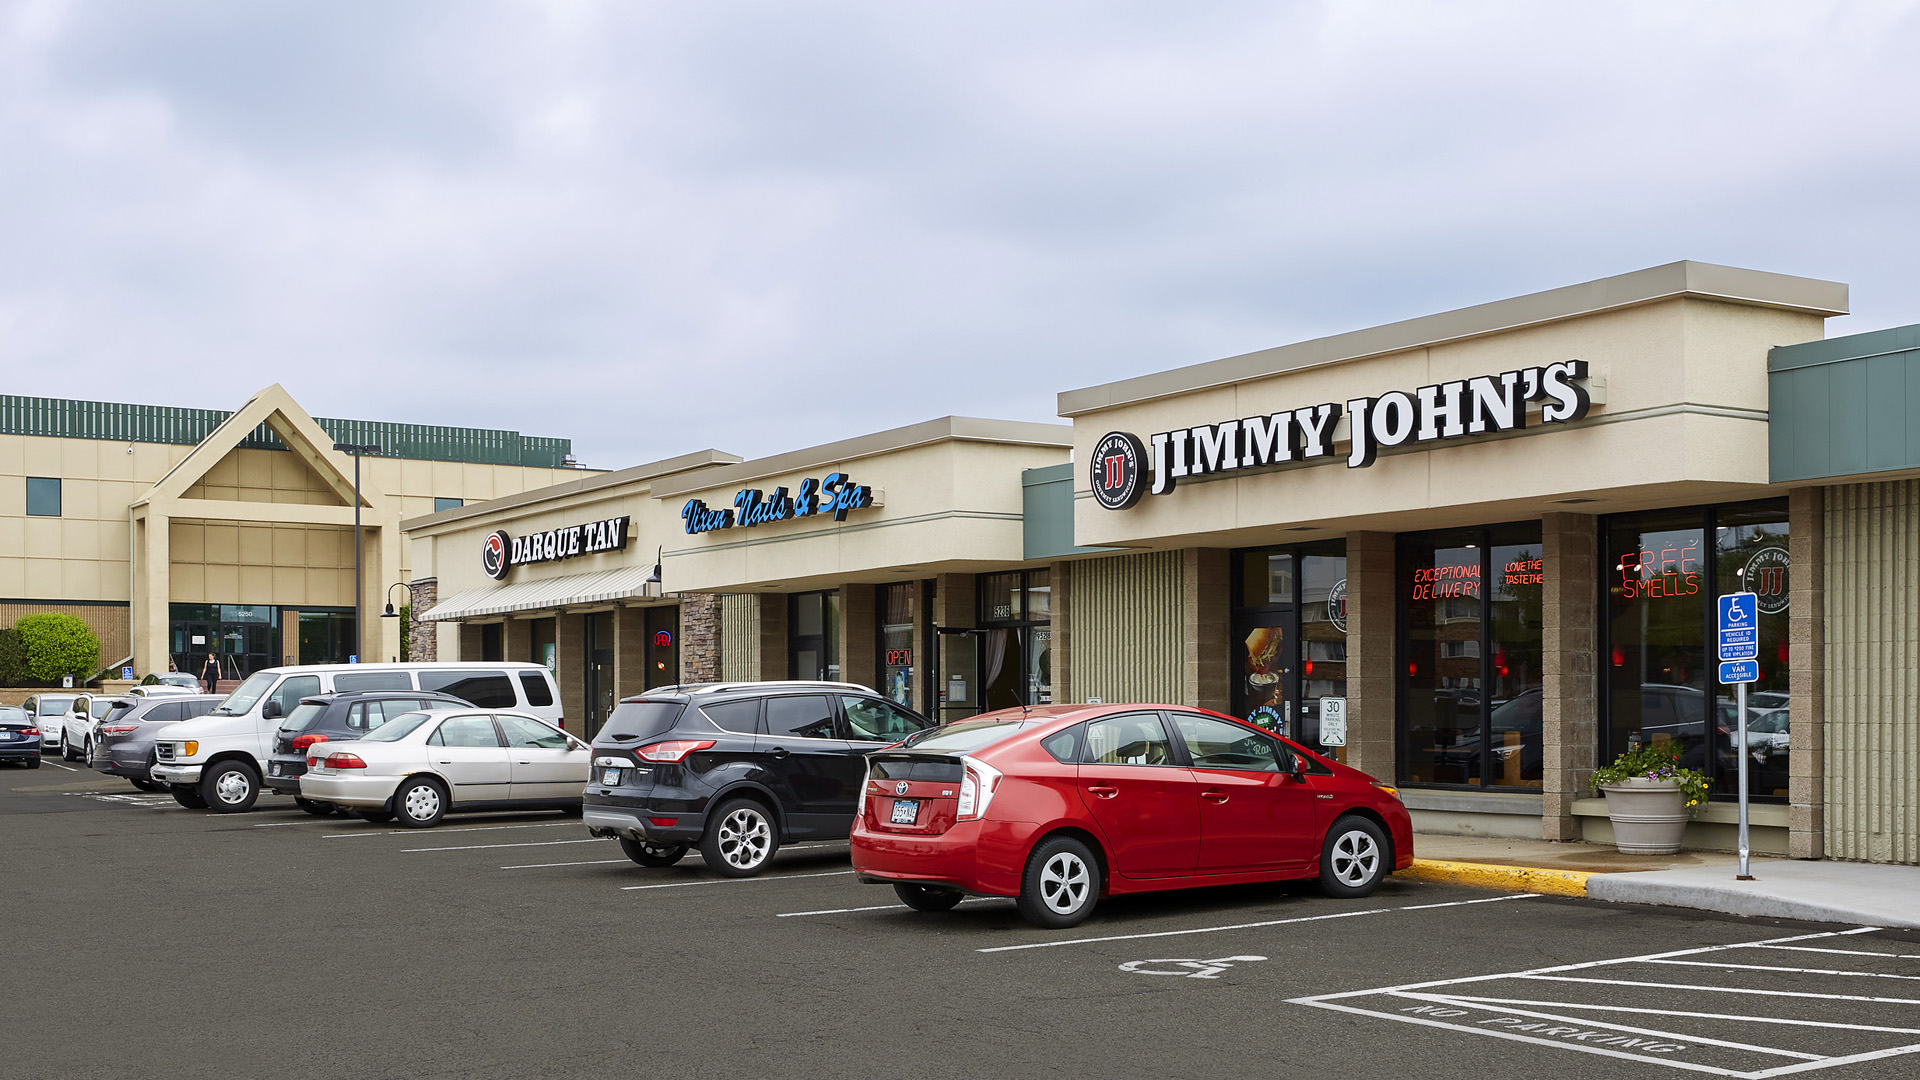 Normandale Retail Shopping Center Bloomington MN exterior view featuring Jimmy Johns